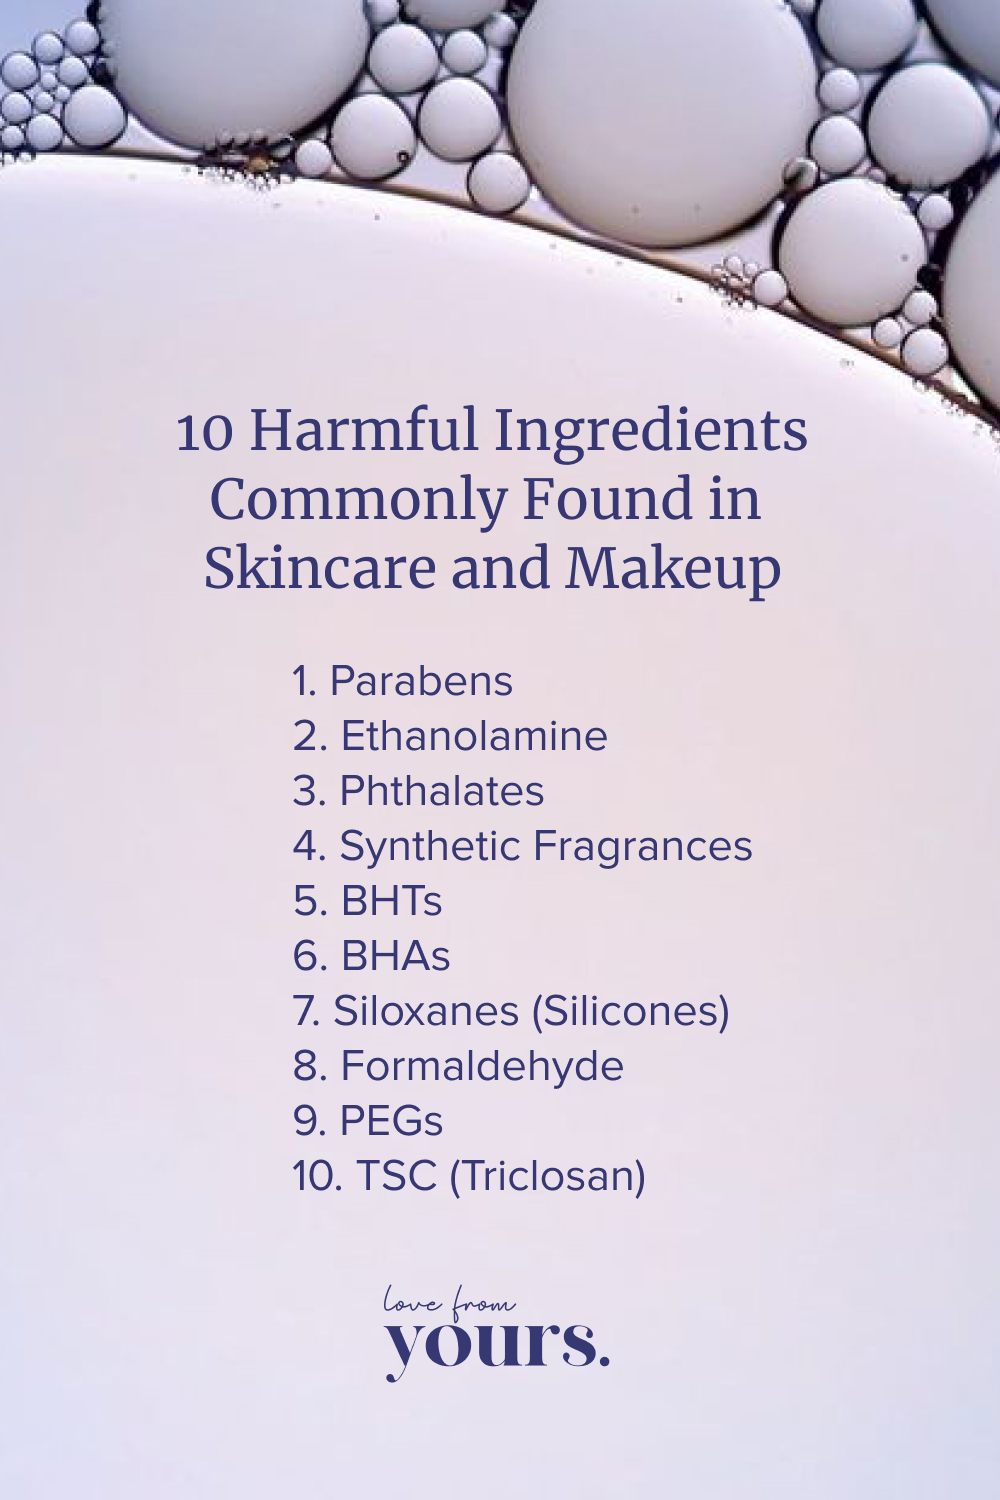 Harmful Ingredients Commonly Found in Skincare and Makeup